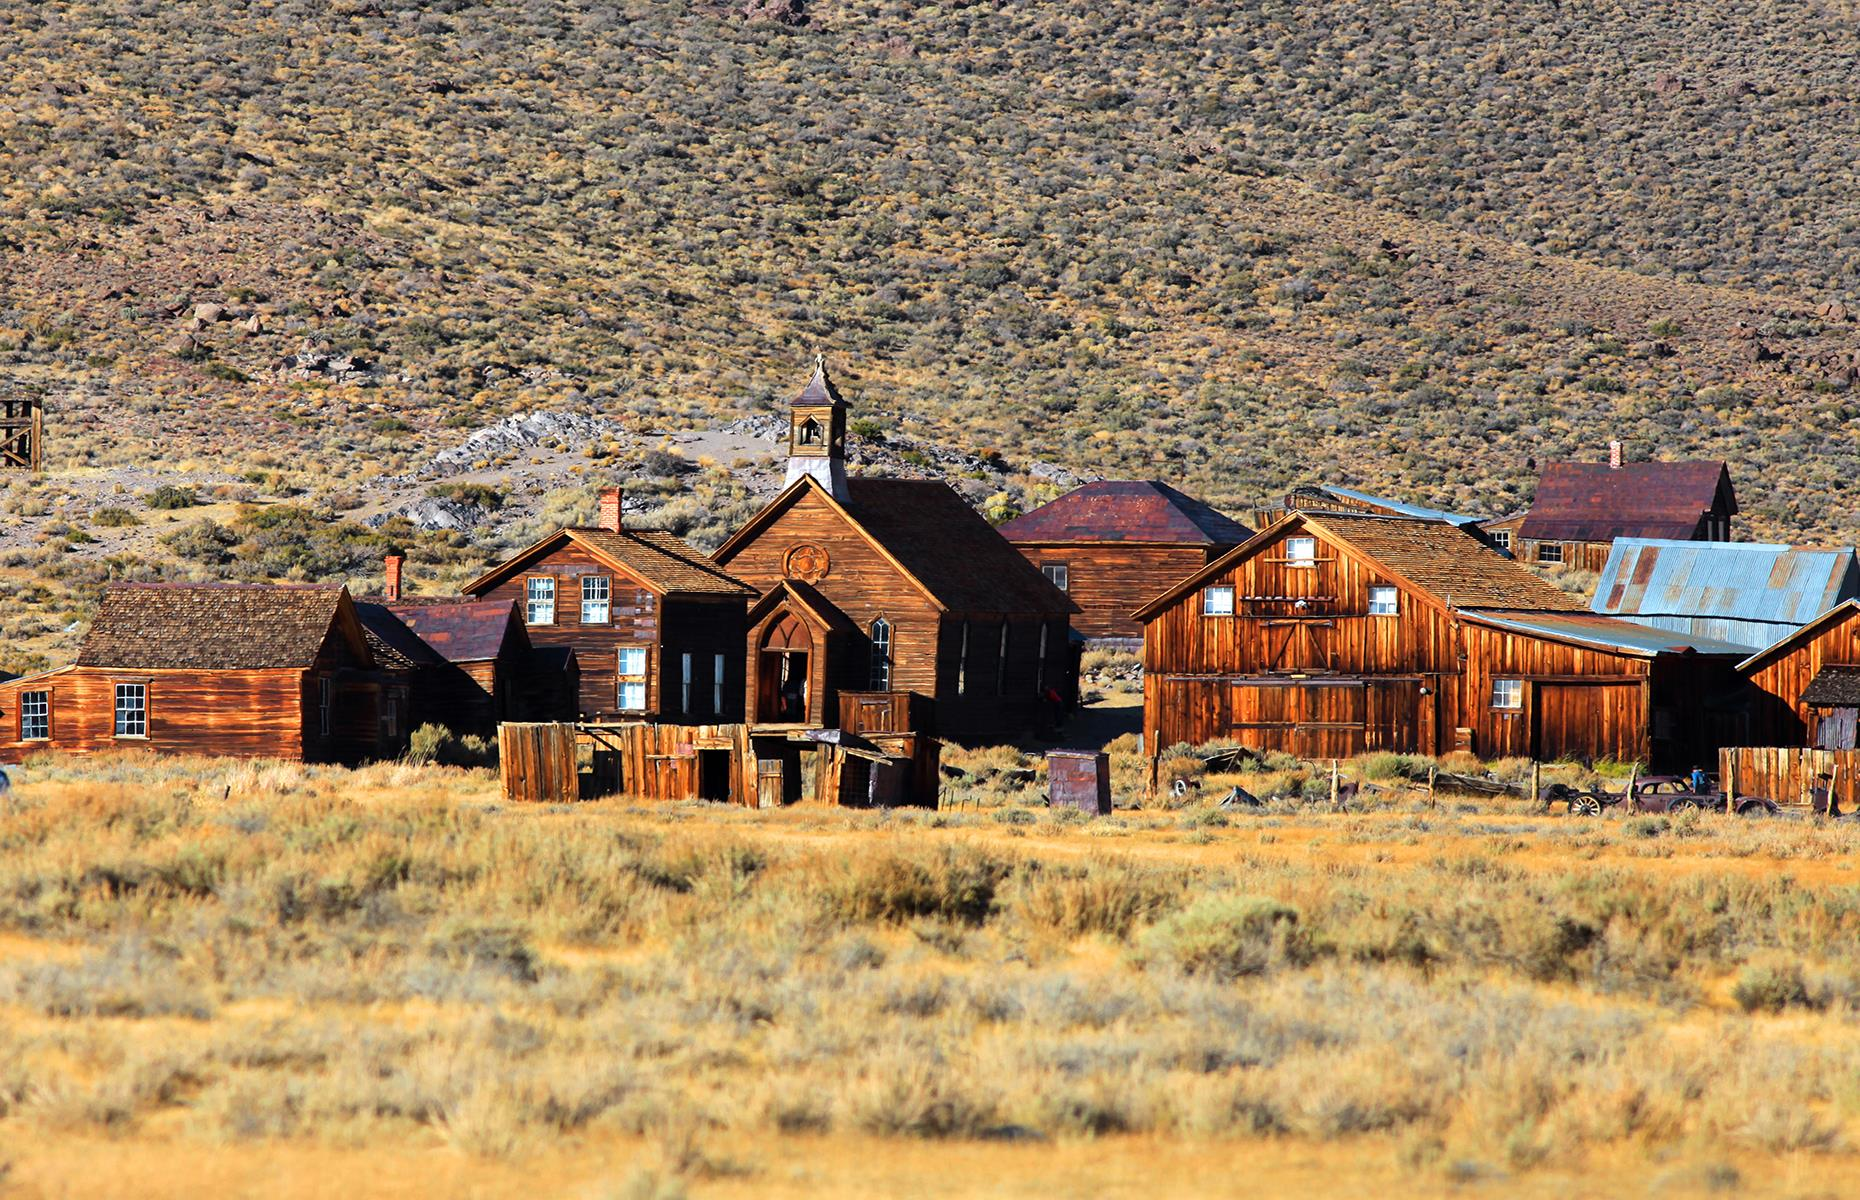 Slide 39 of 68: In its heyday, this California gold mining town had 10,000 inhabitants and 65 saloons, gambling halls, opium dens and brothels. The frequent outbreaks of violence and murders earned Bodie the dubious reputation as 'the most lawless' mining camp in the Wild West.